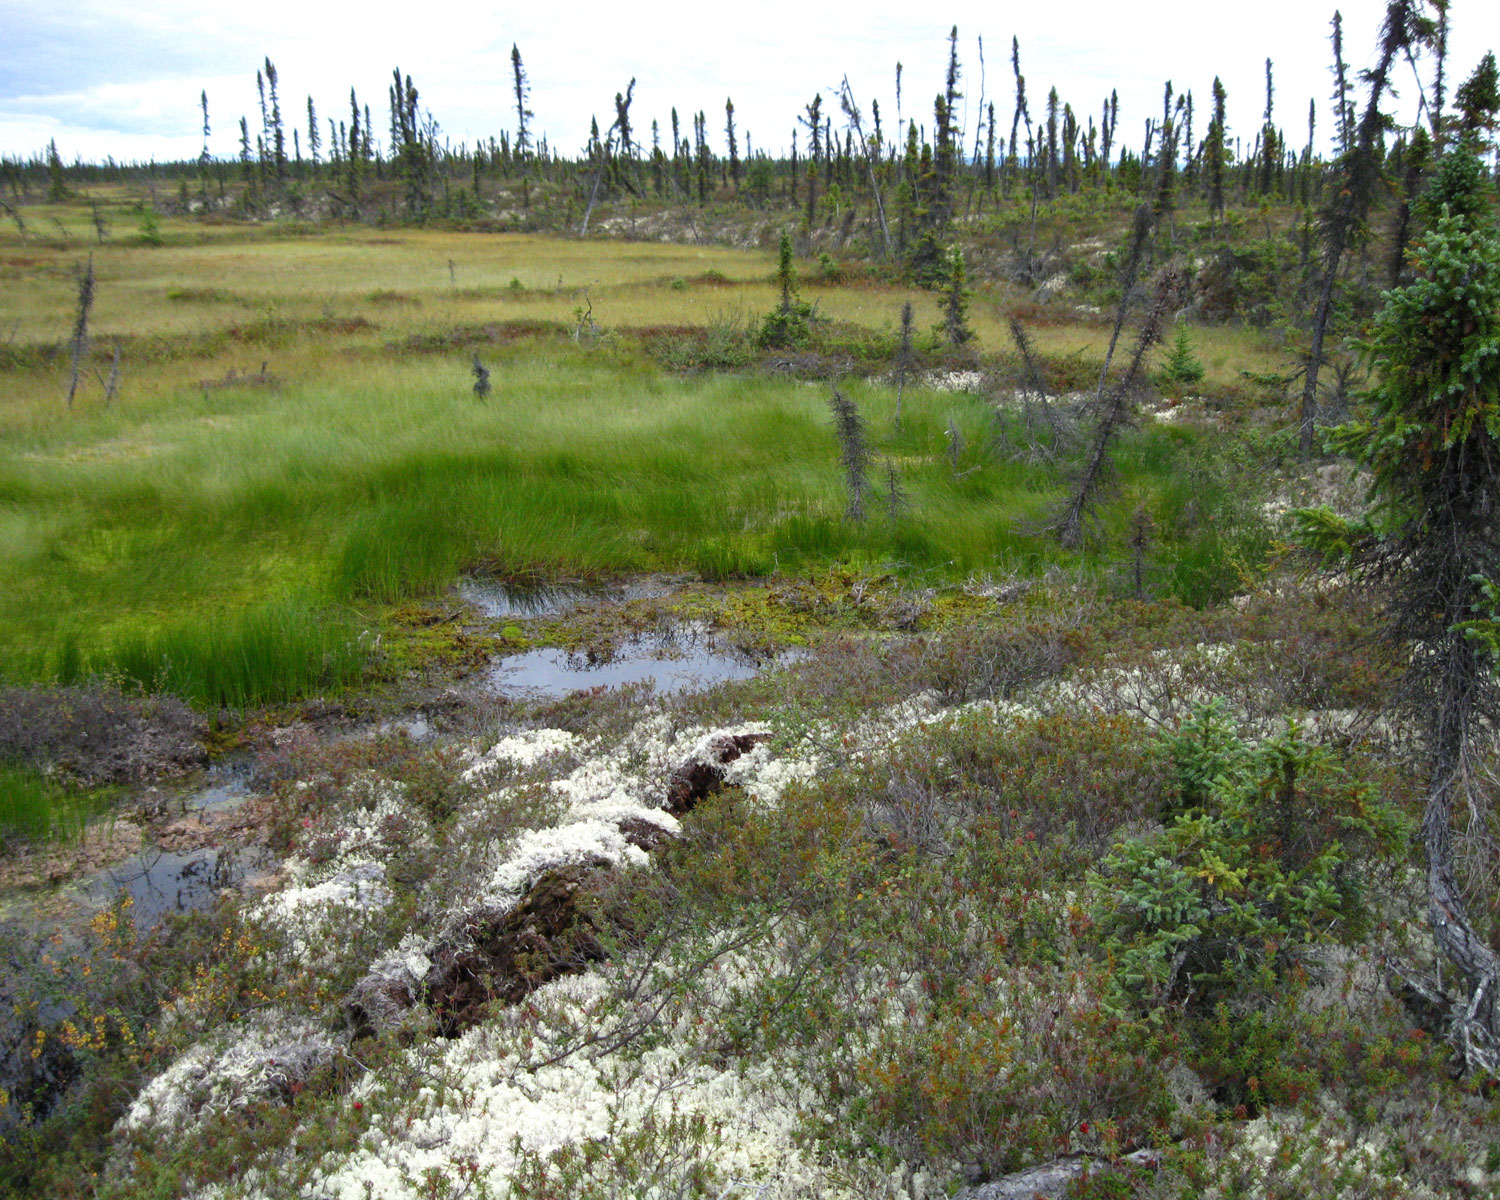 Slag Soil Melted : Soil holds potential to slow global warming stanford news